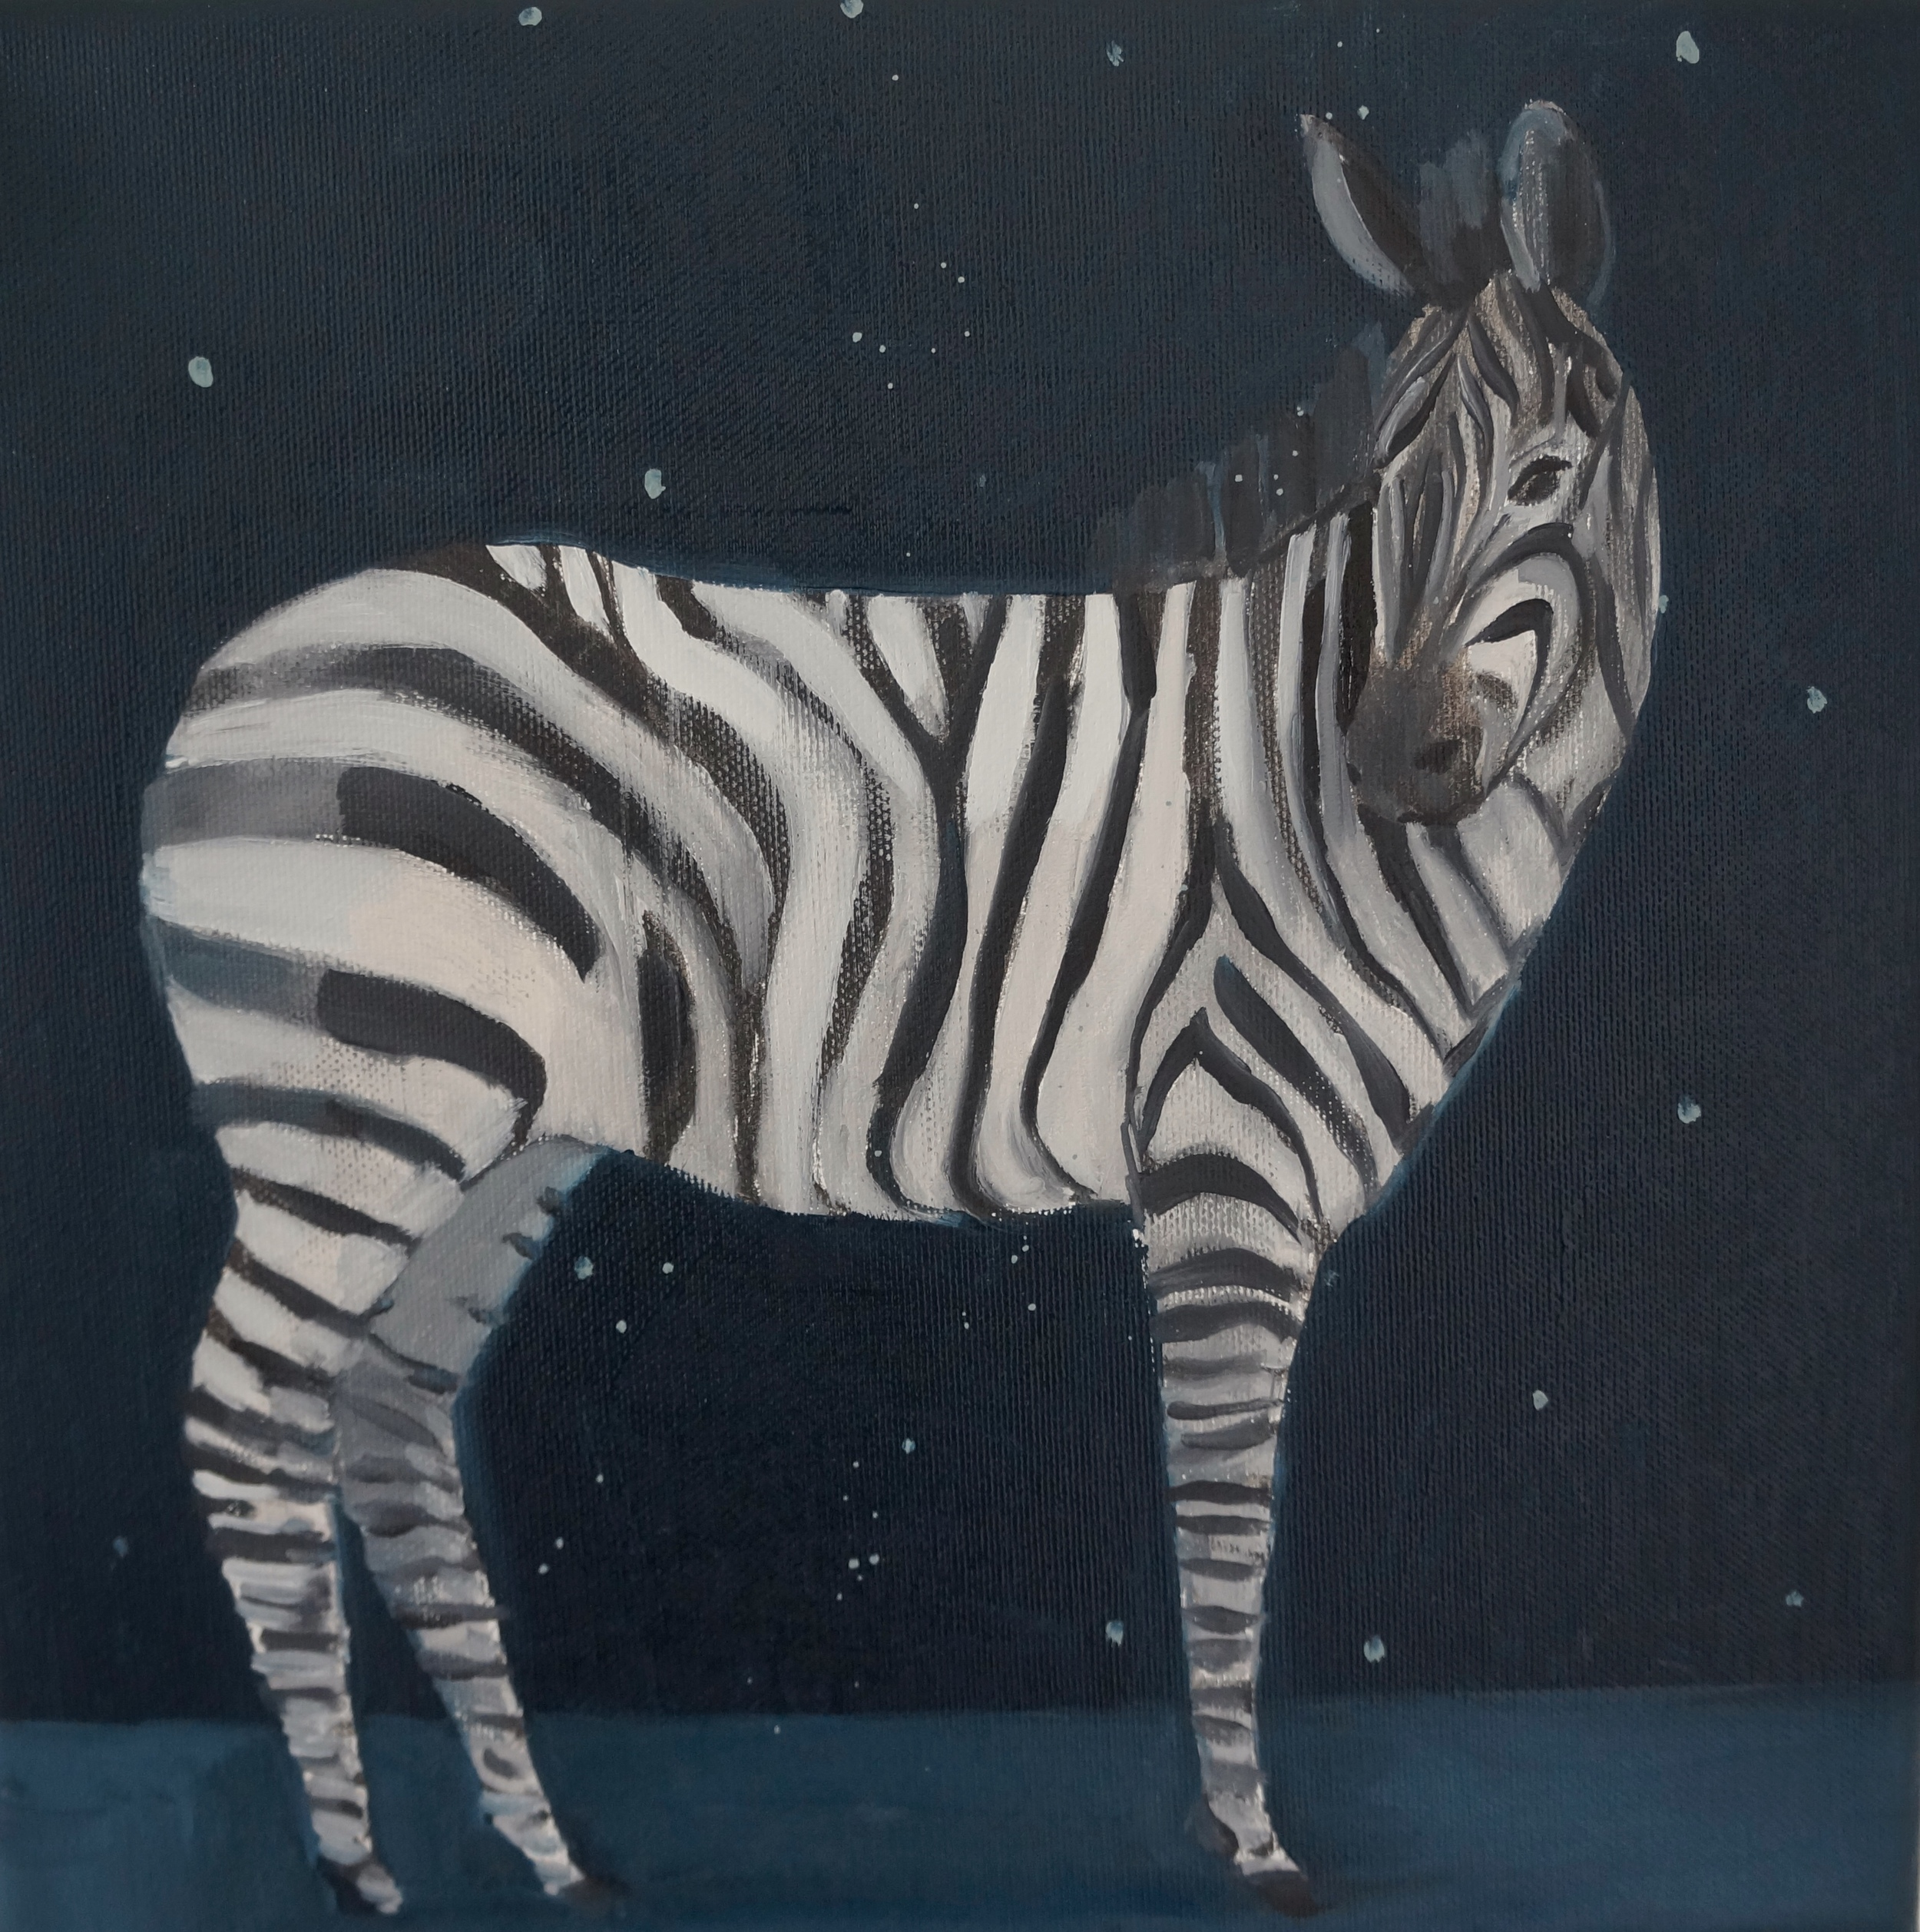 Kristin Vestgard Another day oil on canvas 30x30 £ 1500